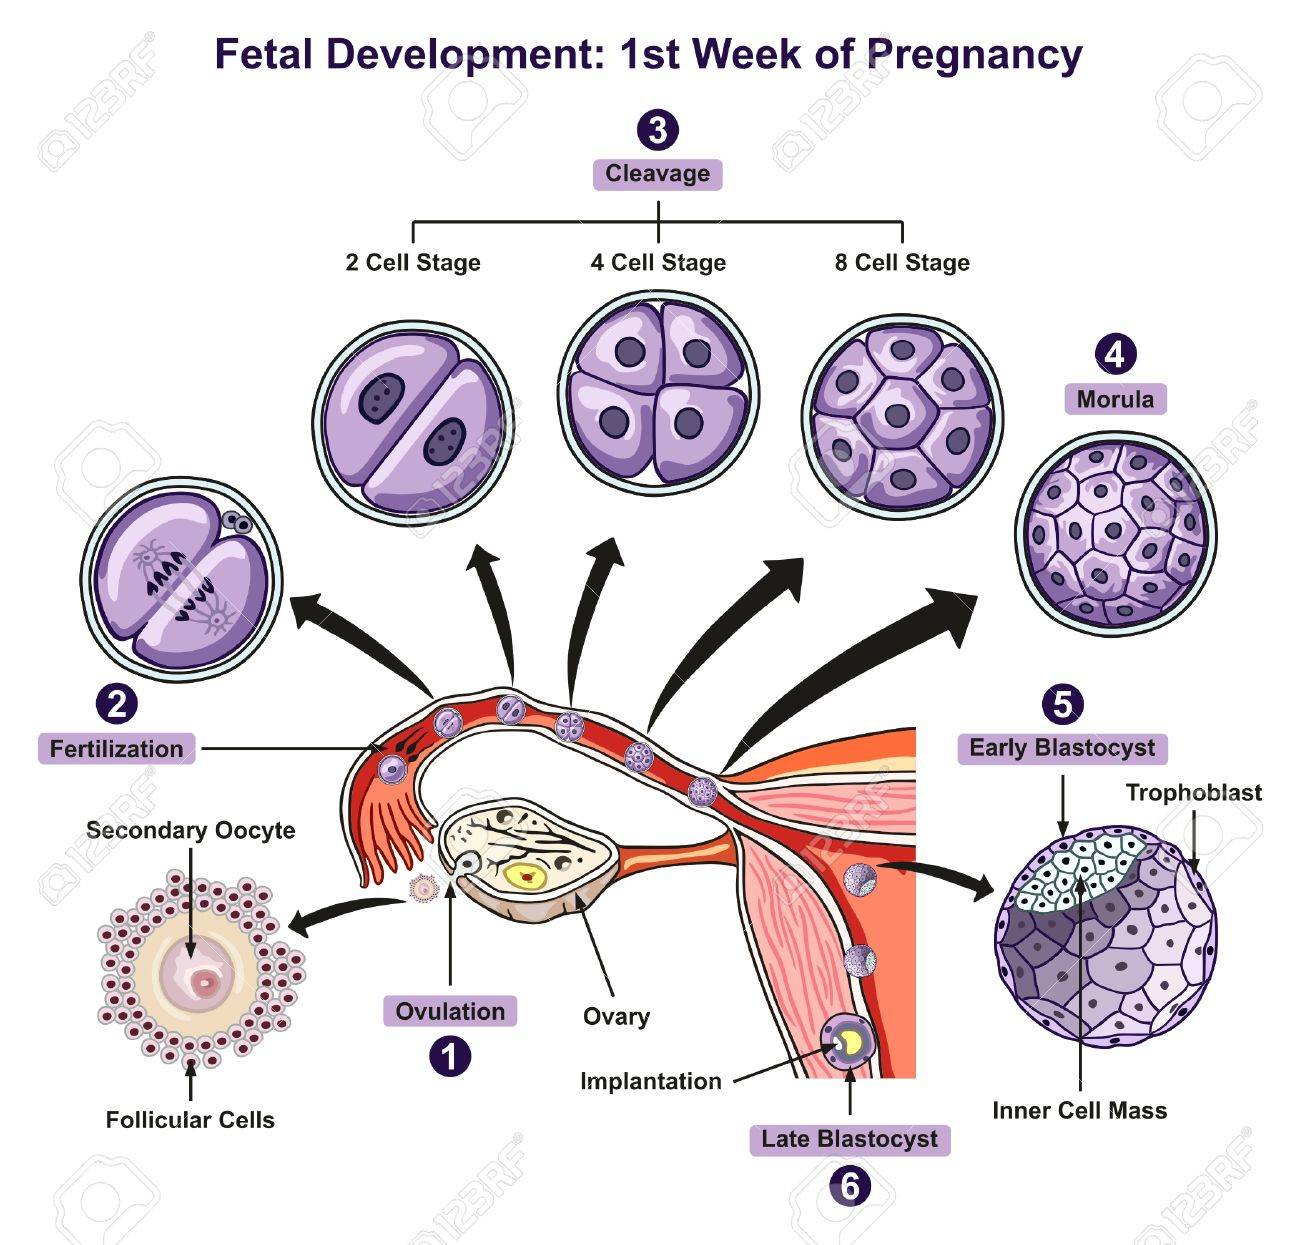 hight resolution of fetal development first week of pregnancy infographic diagram of female reproductive system with all stages including